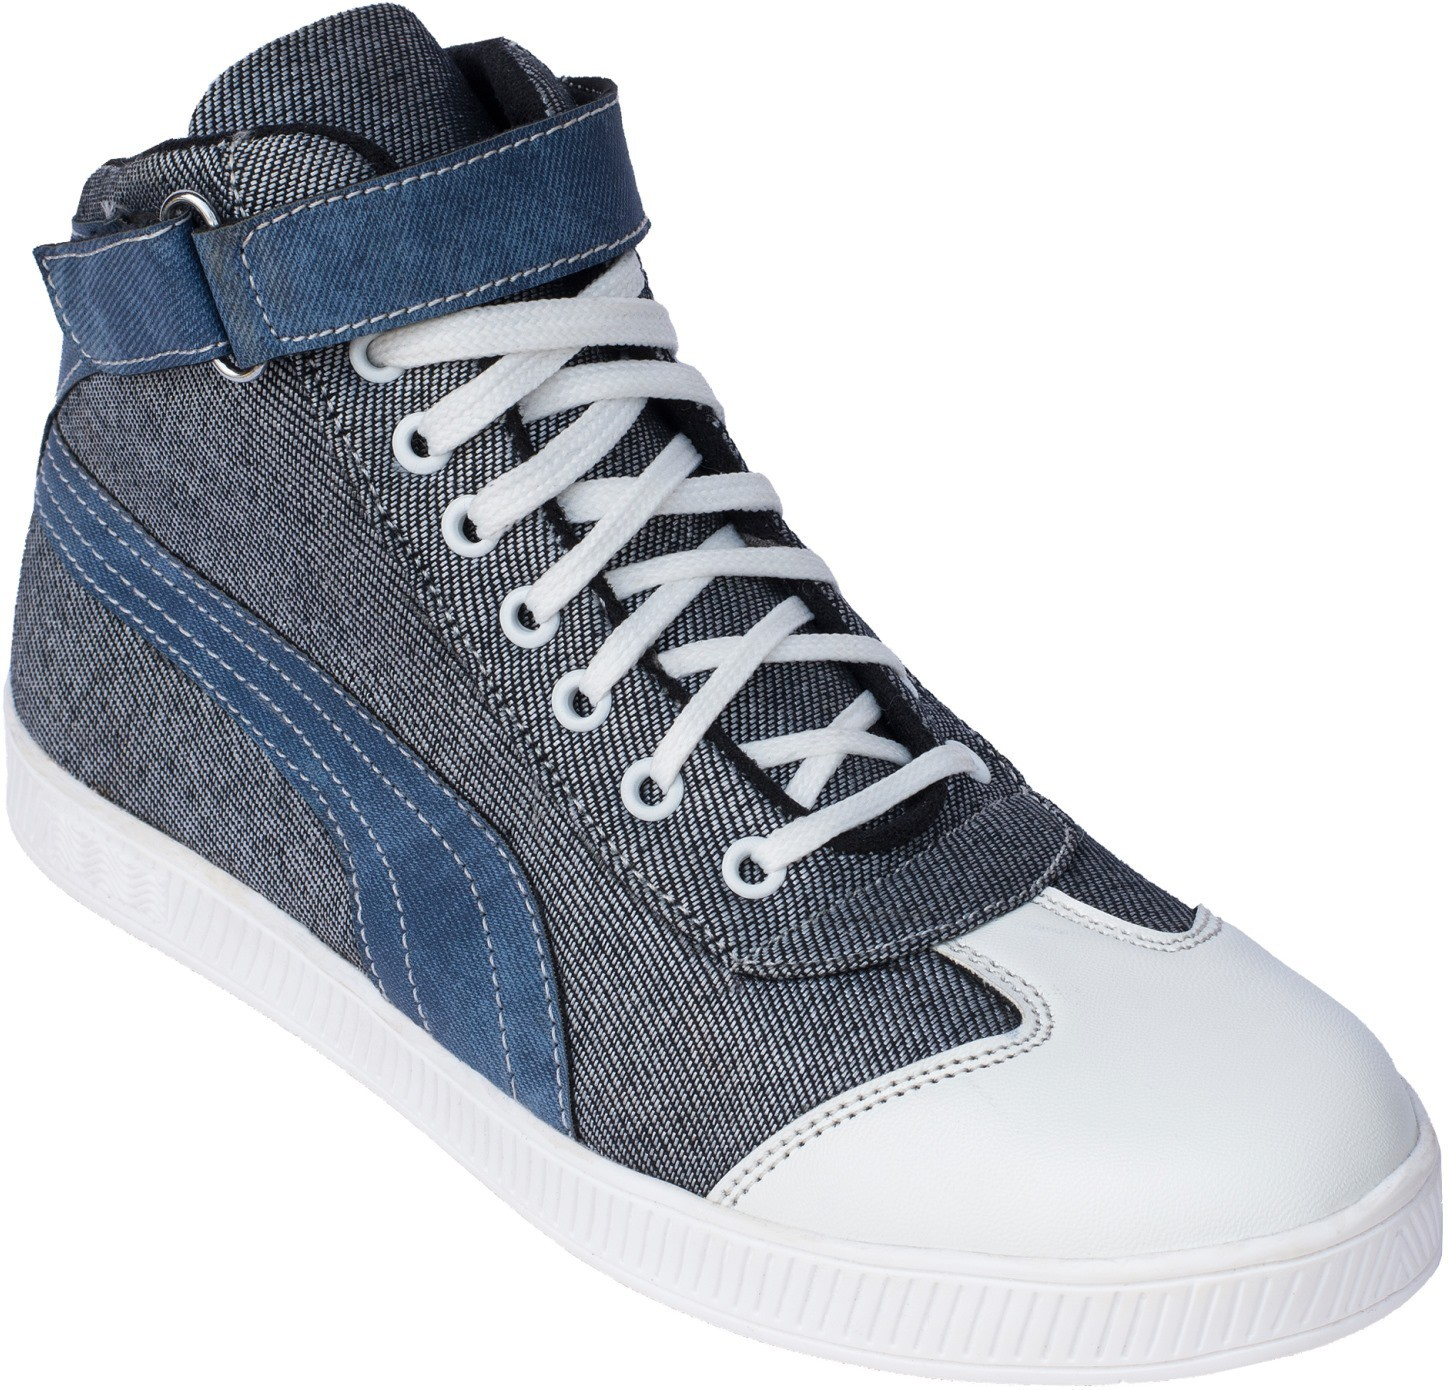 Magnolia Sneakers(Grey)